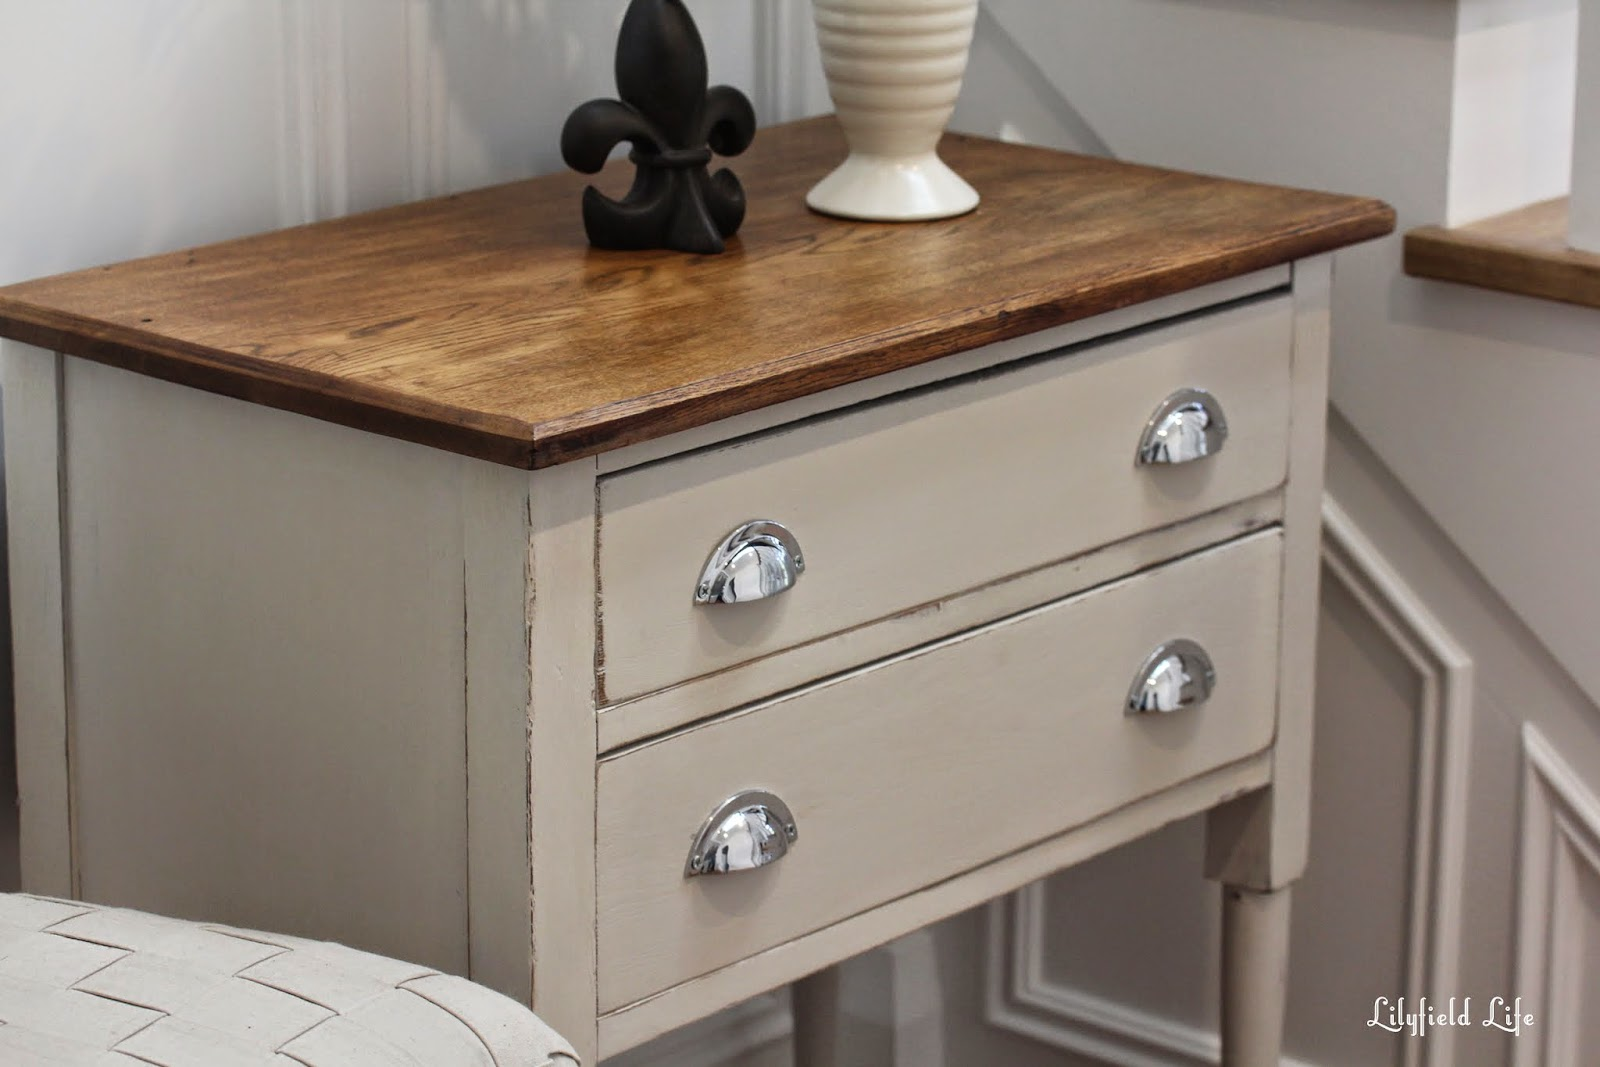 painting old furnitureLilyfield Life How to Paint Old Oak Drawers